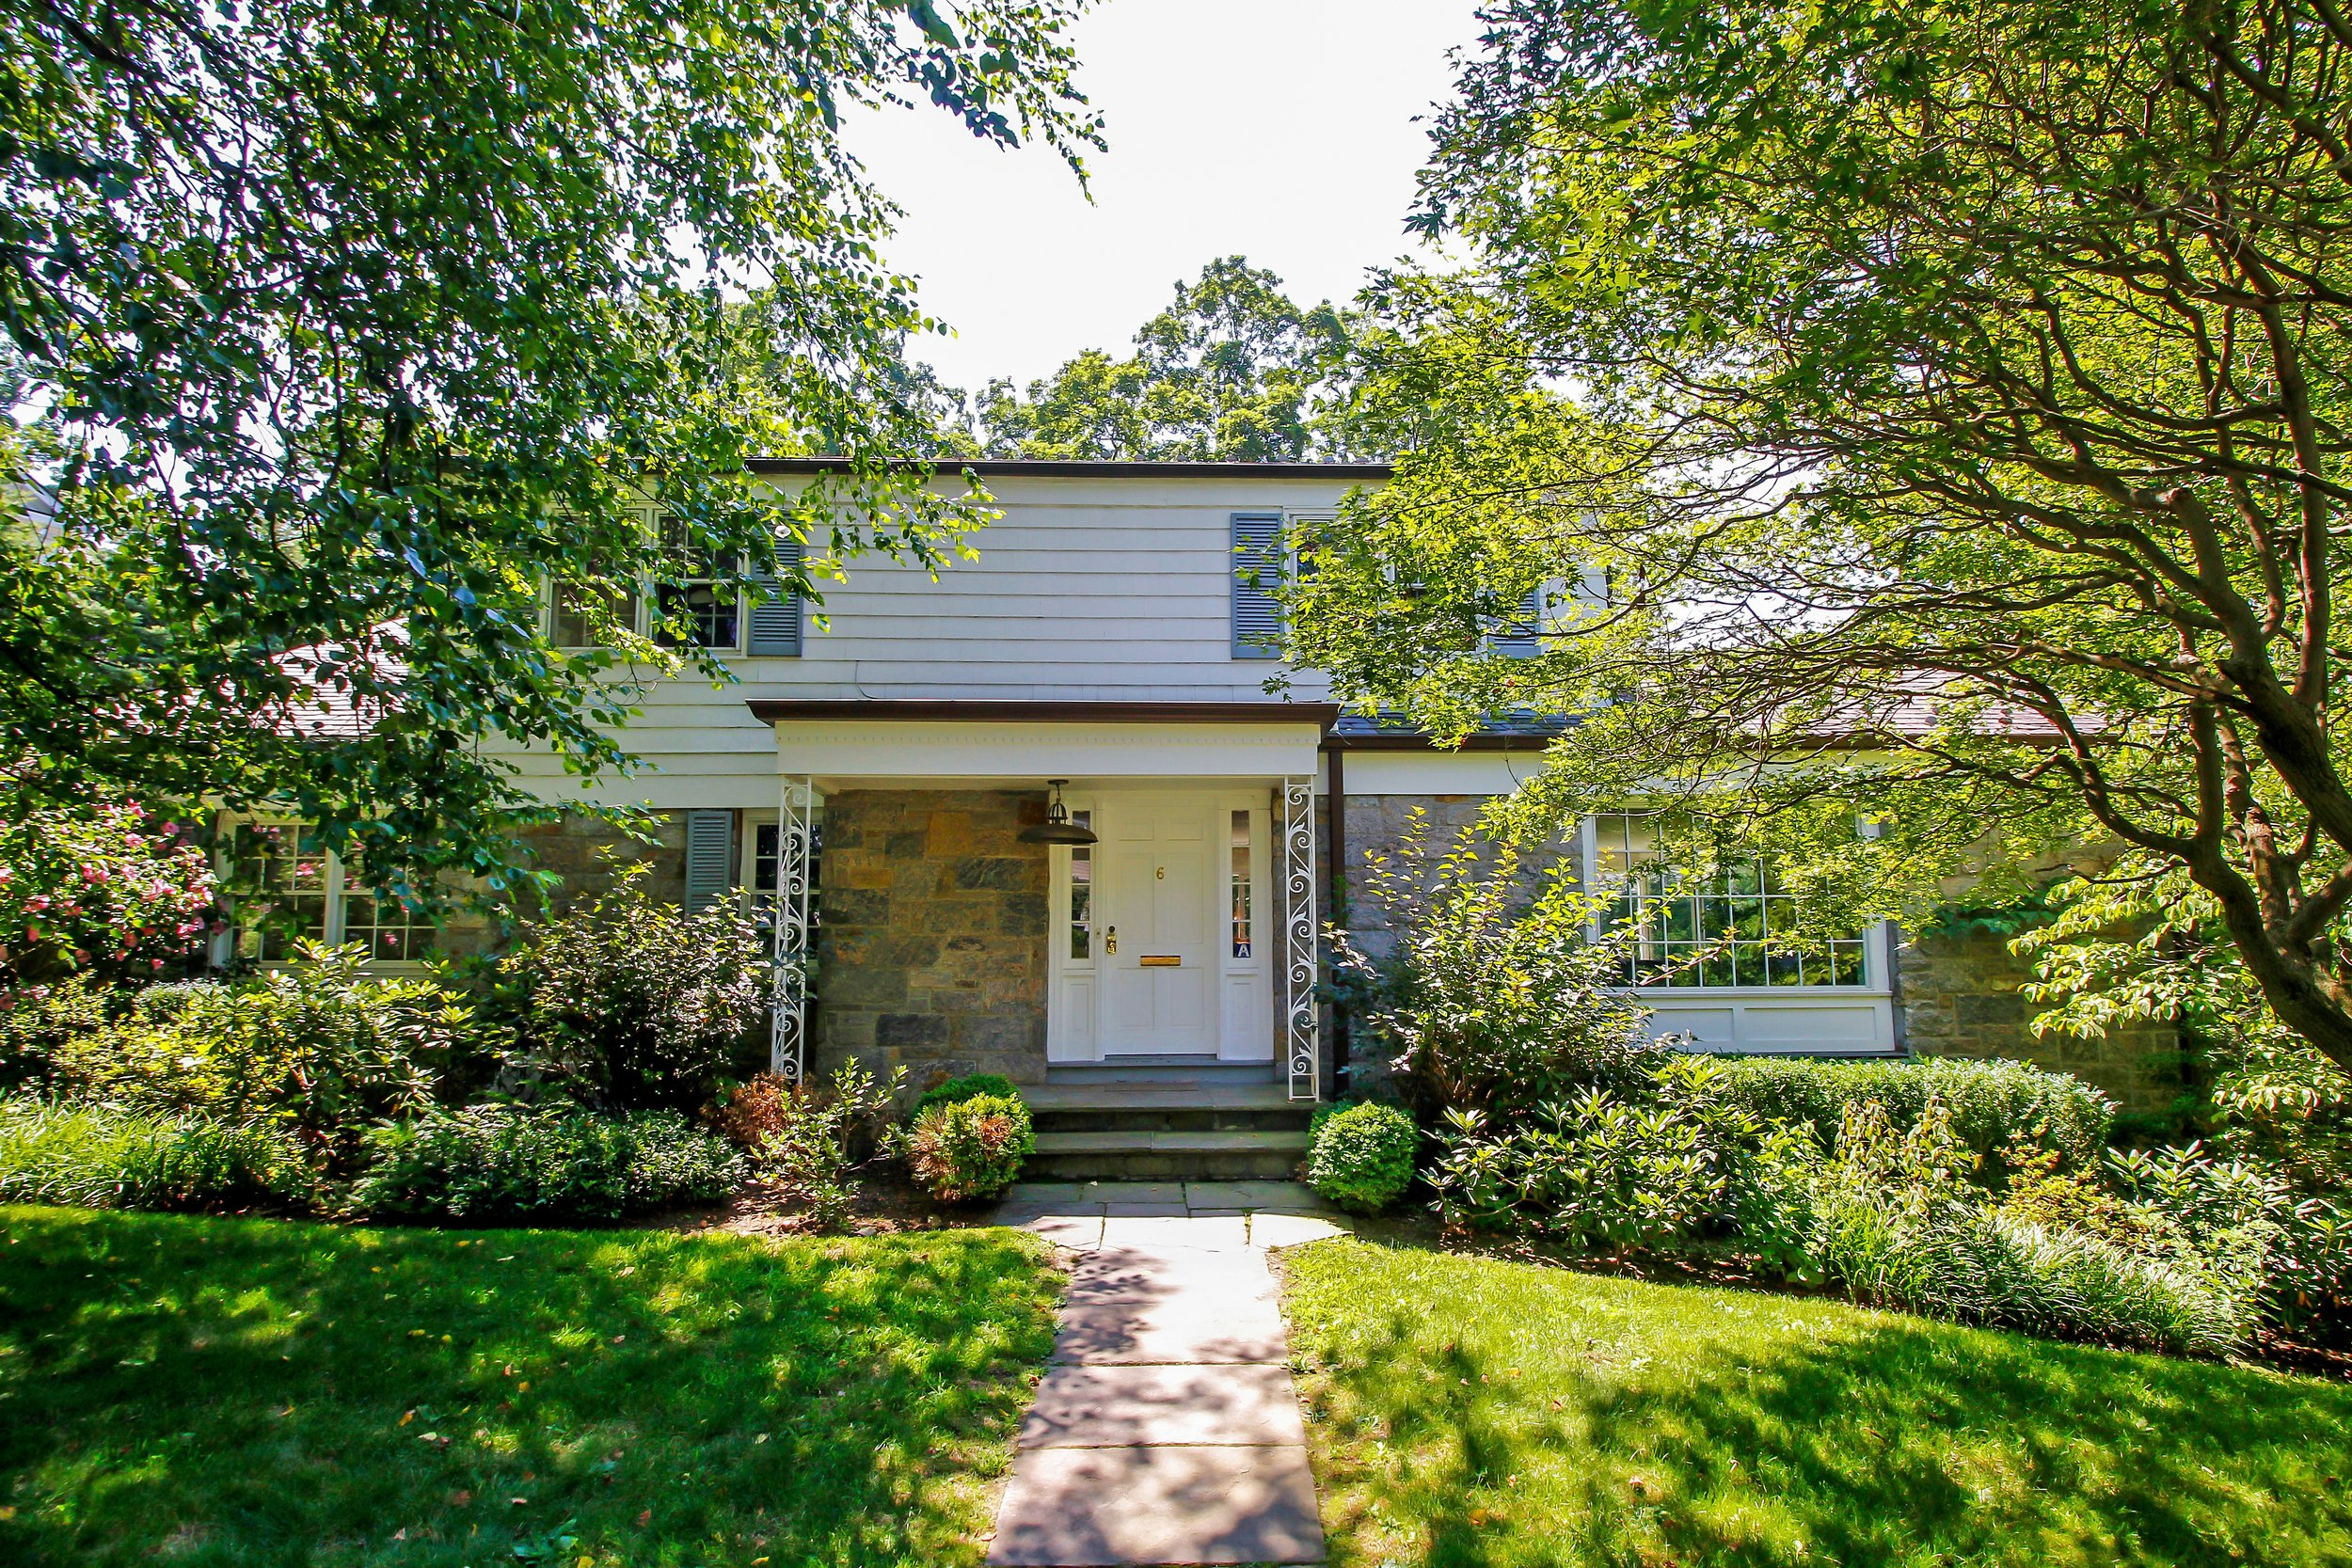 SOLD  6 Horseguard Lane Scarsdale, NY Represented the Buyer